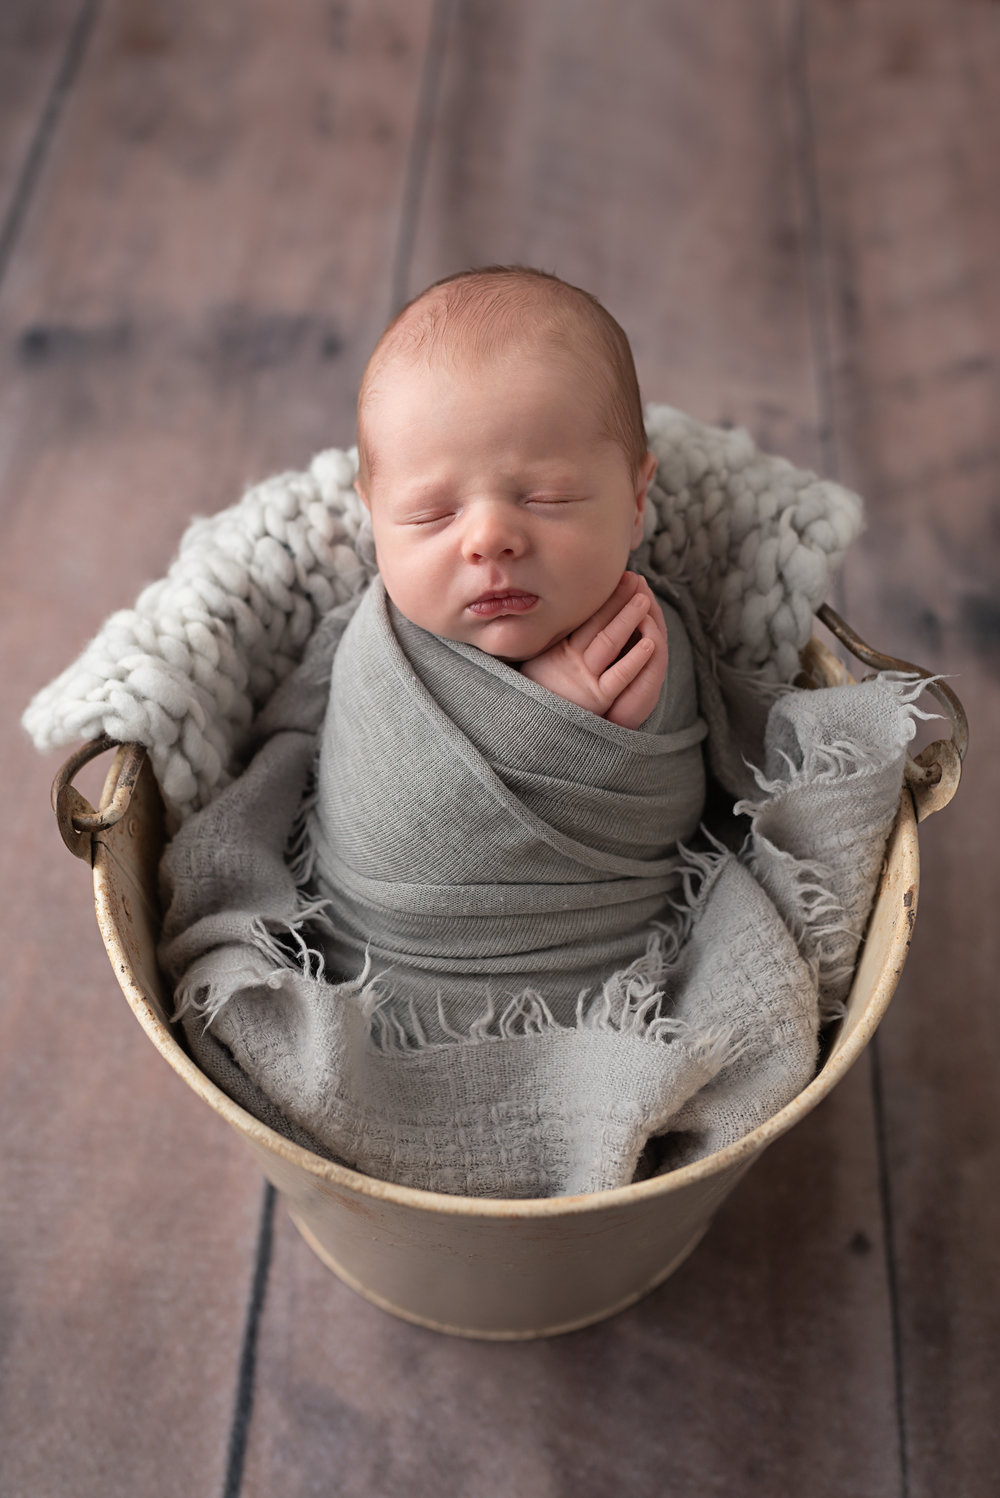 Charleston-Newborn-Photographer-FSP_9284 copy.jpg